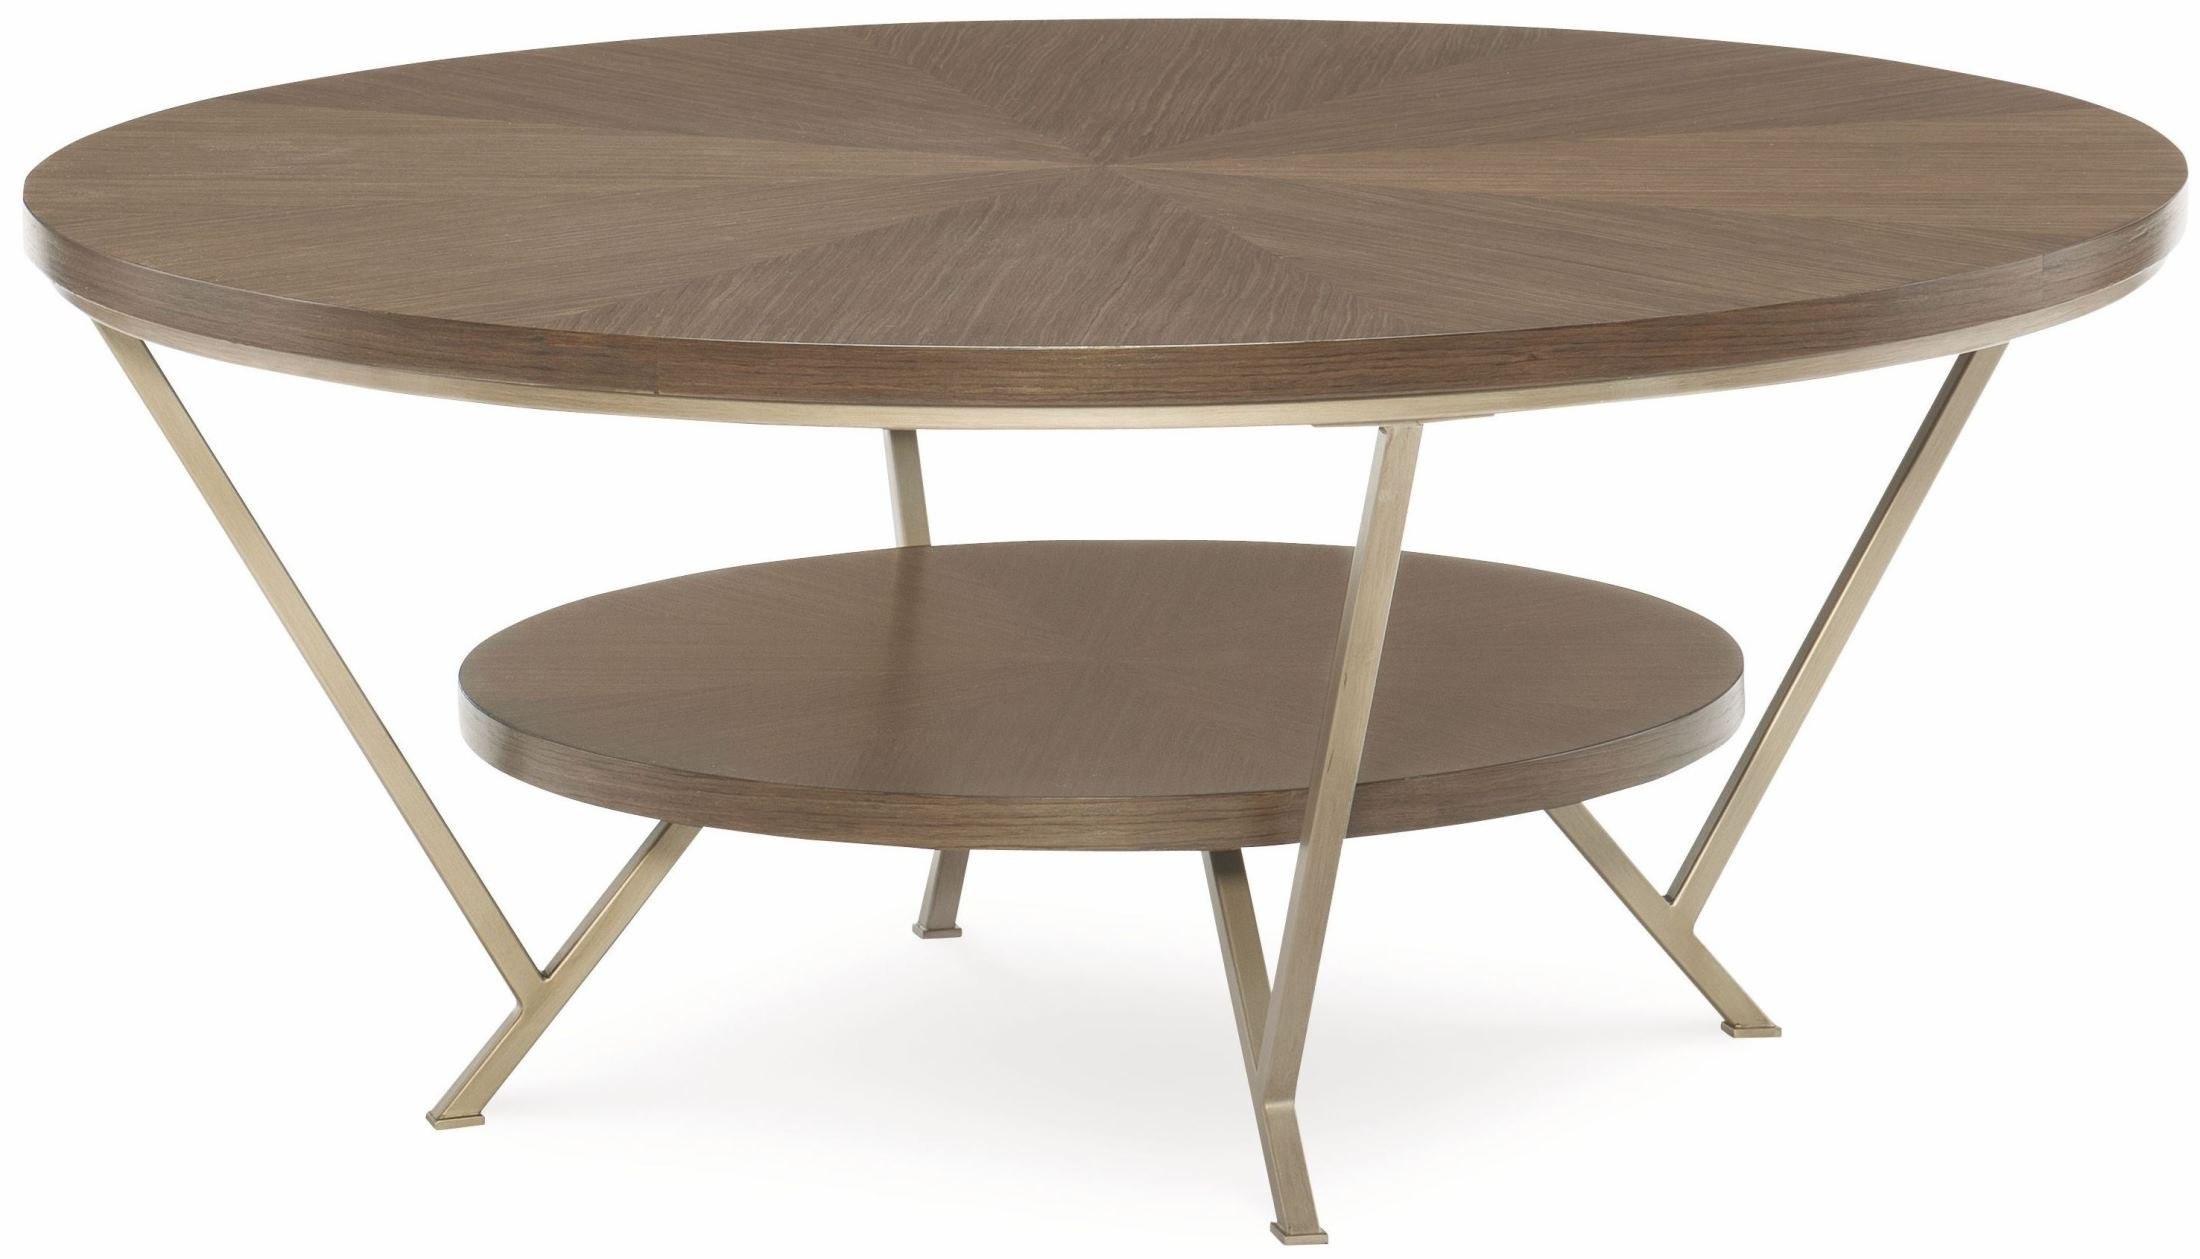 Soho ash round cocktail table 6020 501 legacy classic Round cocktail table